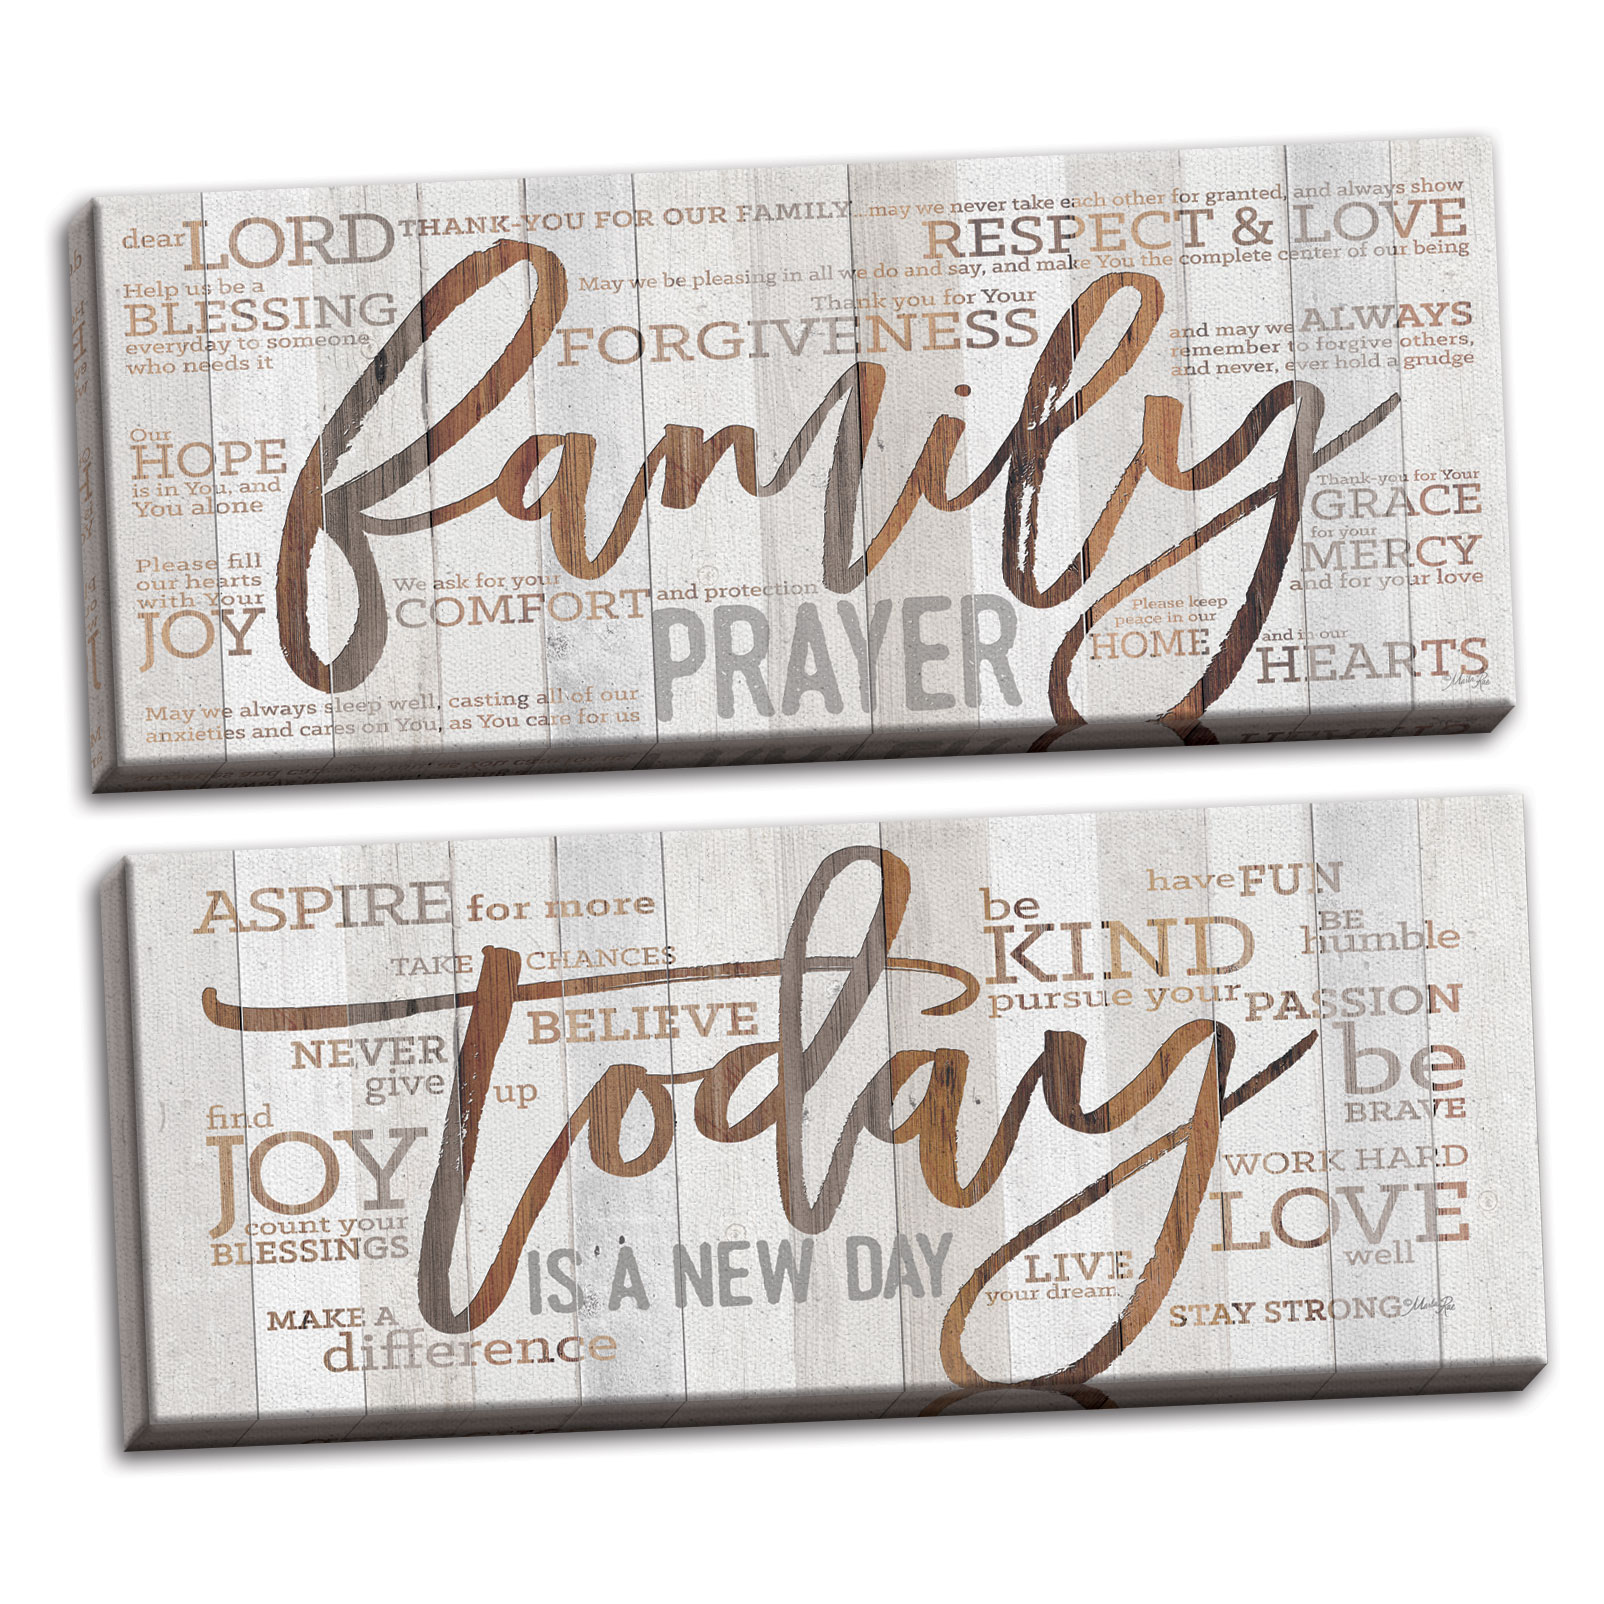 Gango Home Decor Contemporary Family Prayer & Today is a New Day by Marla Rae (Ready to Hang); Two 20x8in Hand-Stretched Canvases